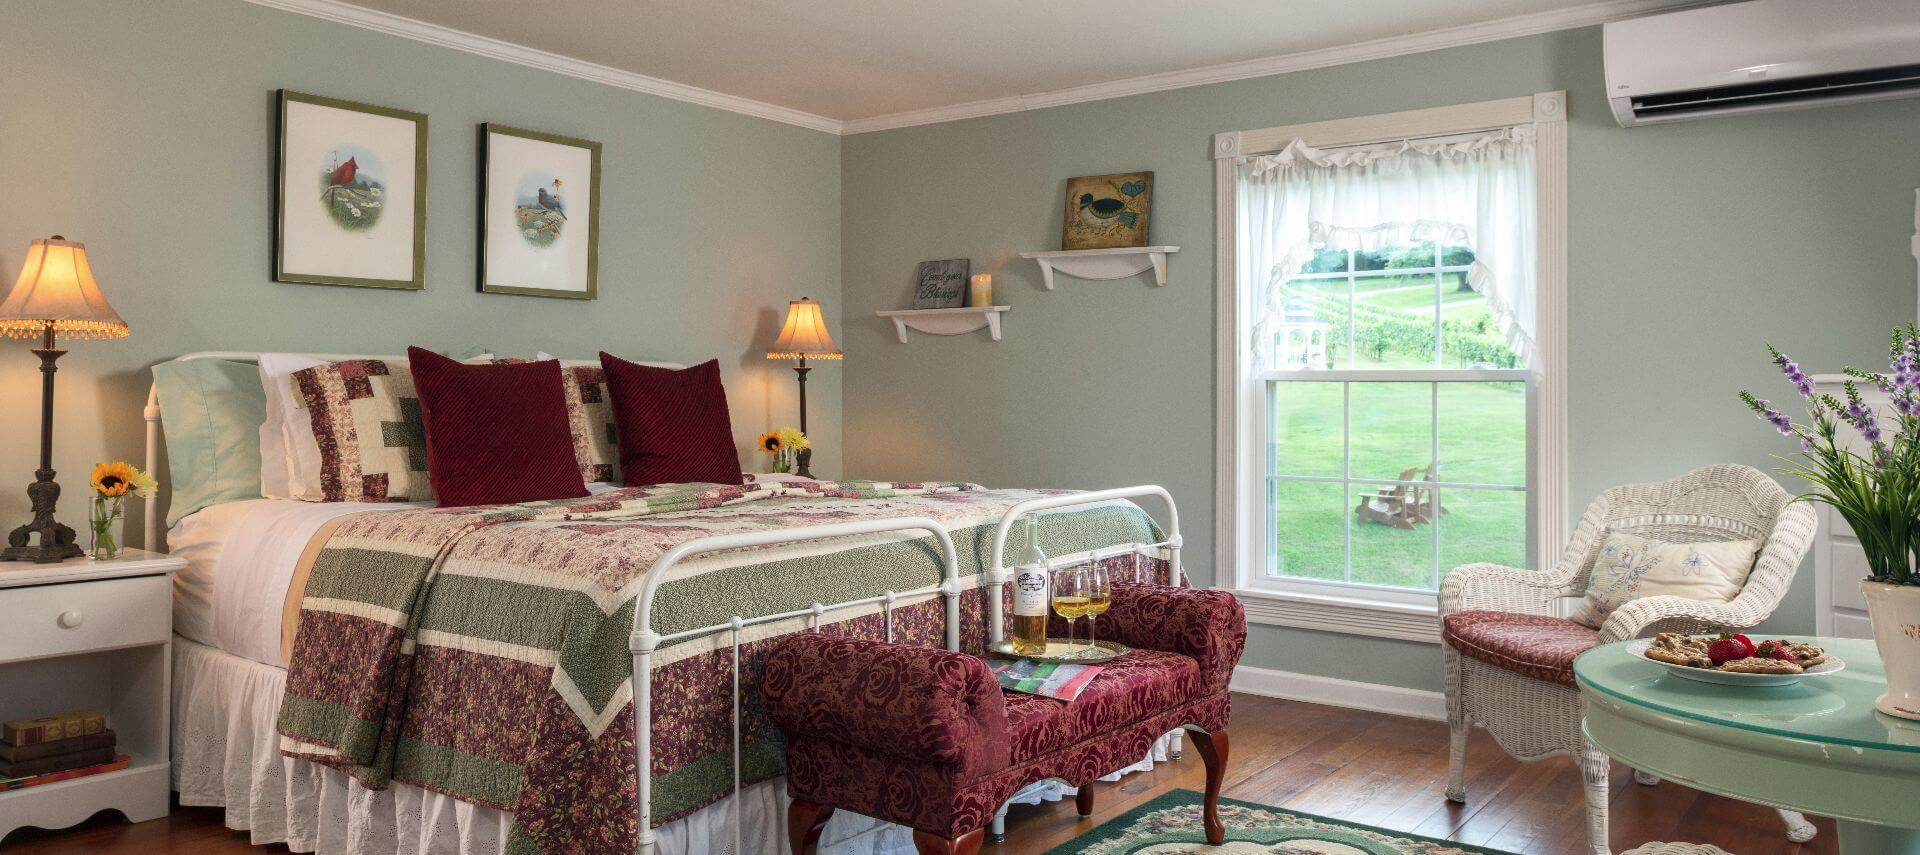 Large room shown with white iron bedstead king bed made up with colorful quilts.